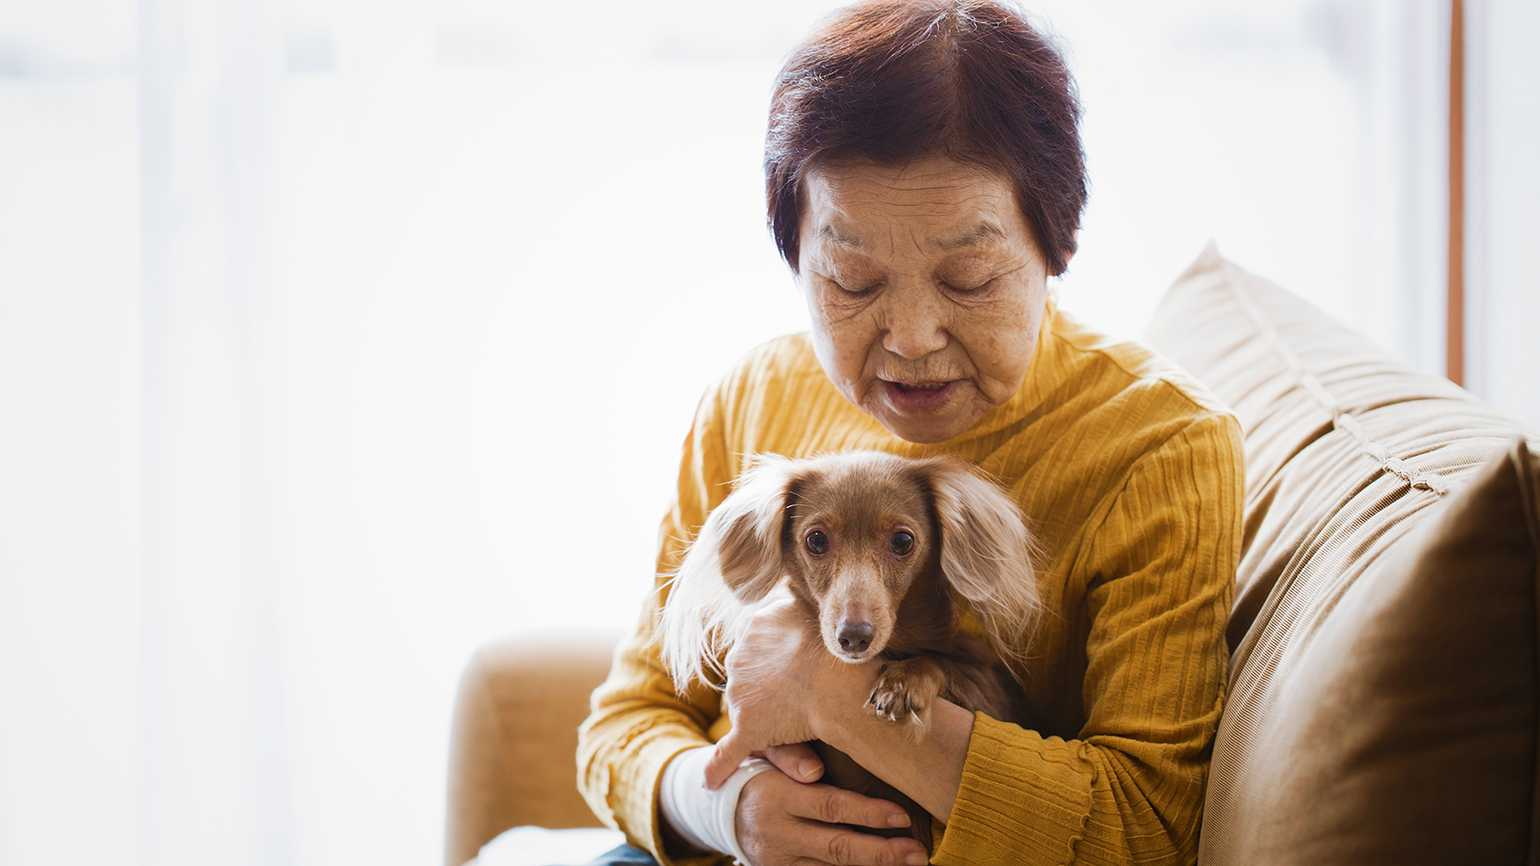 A senior woman cuddles a small dog